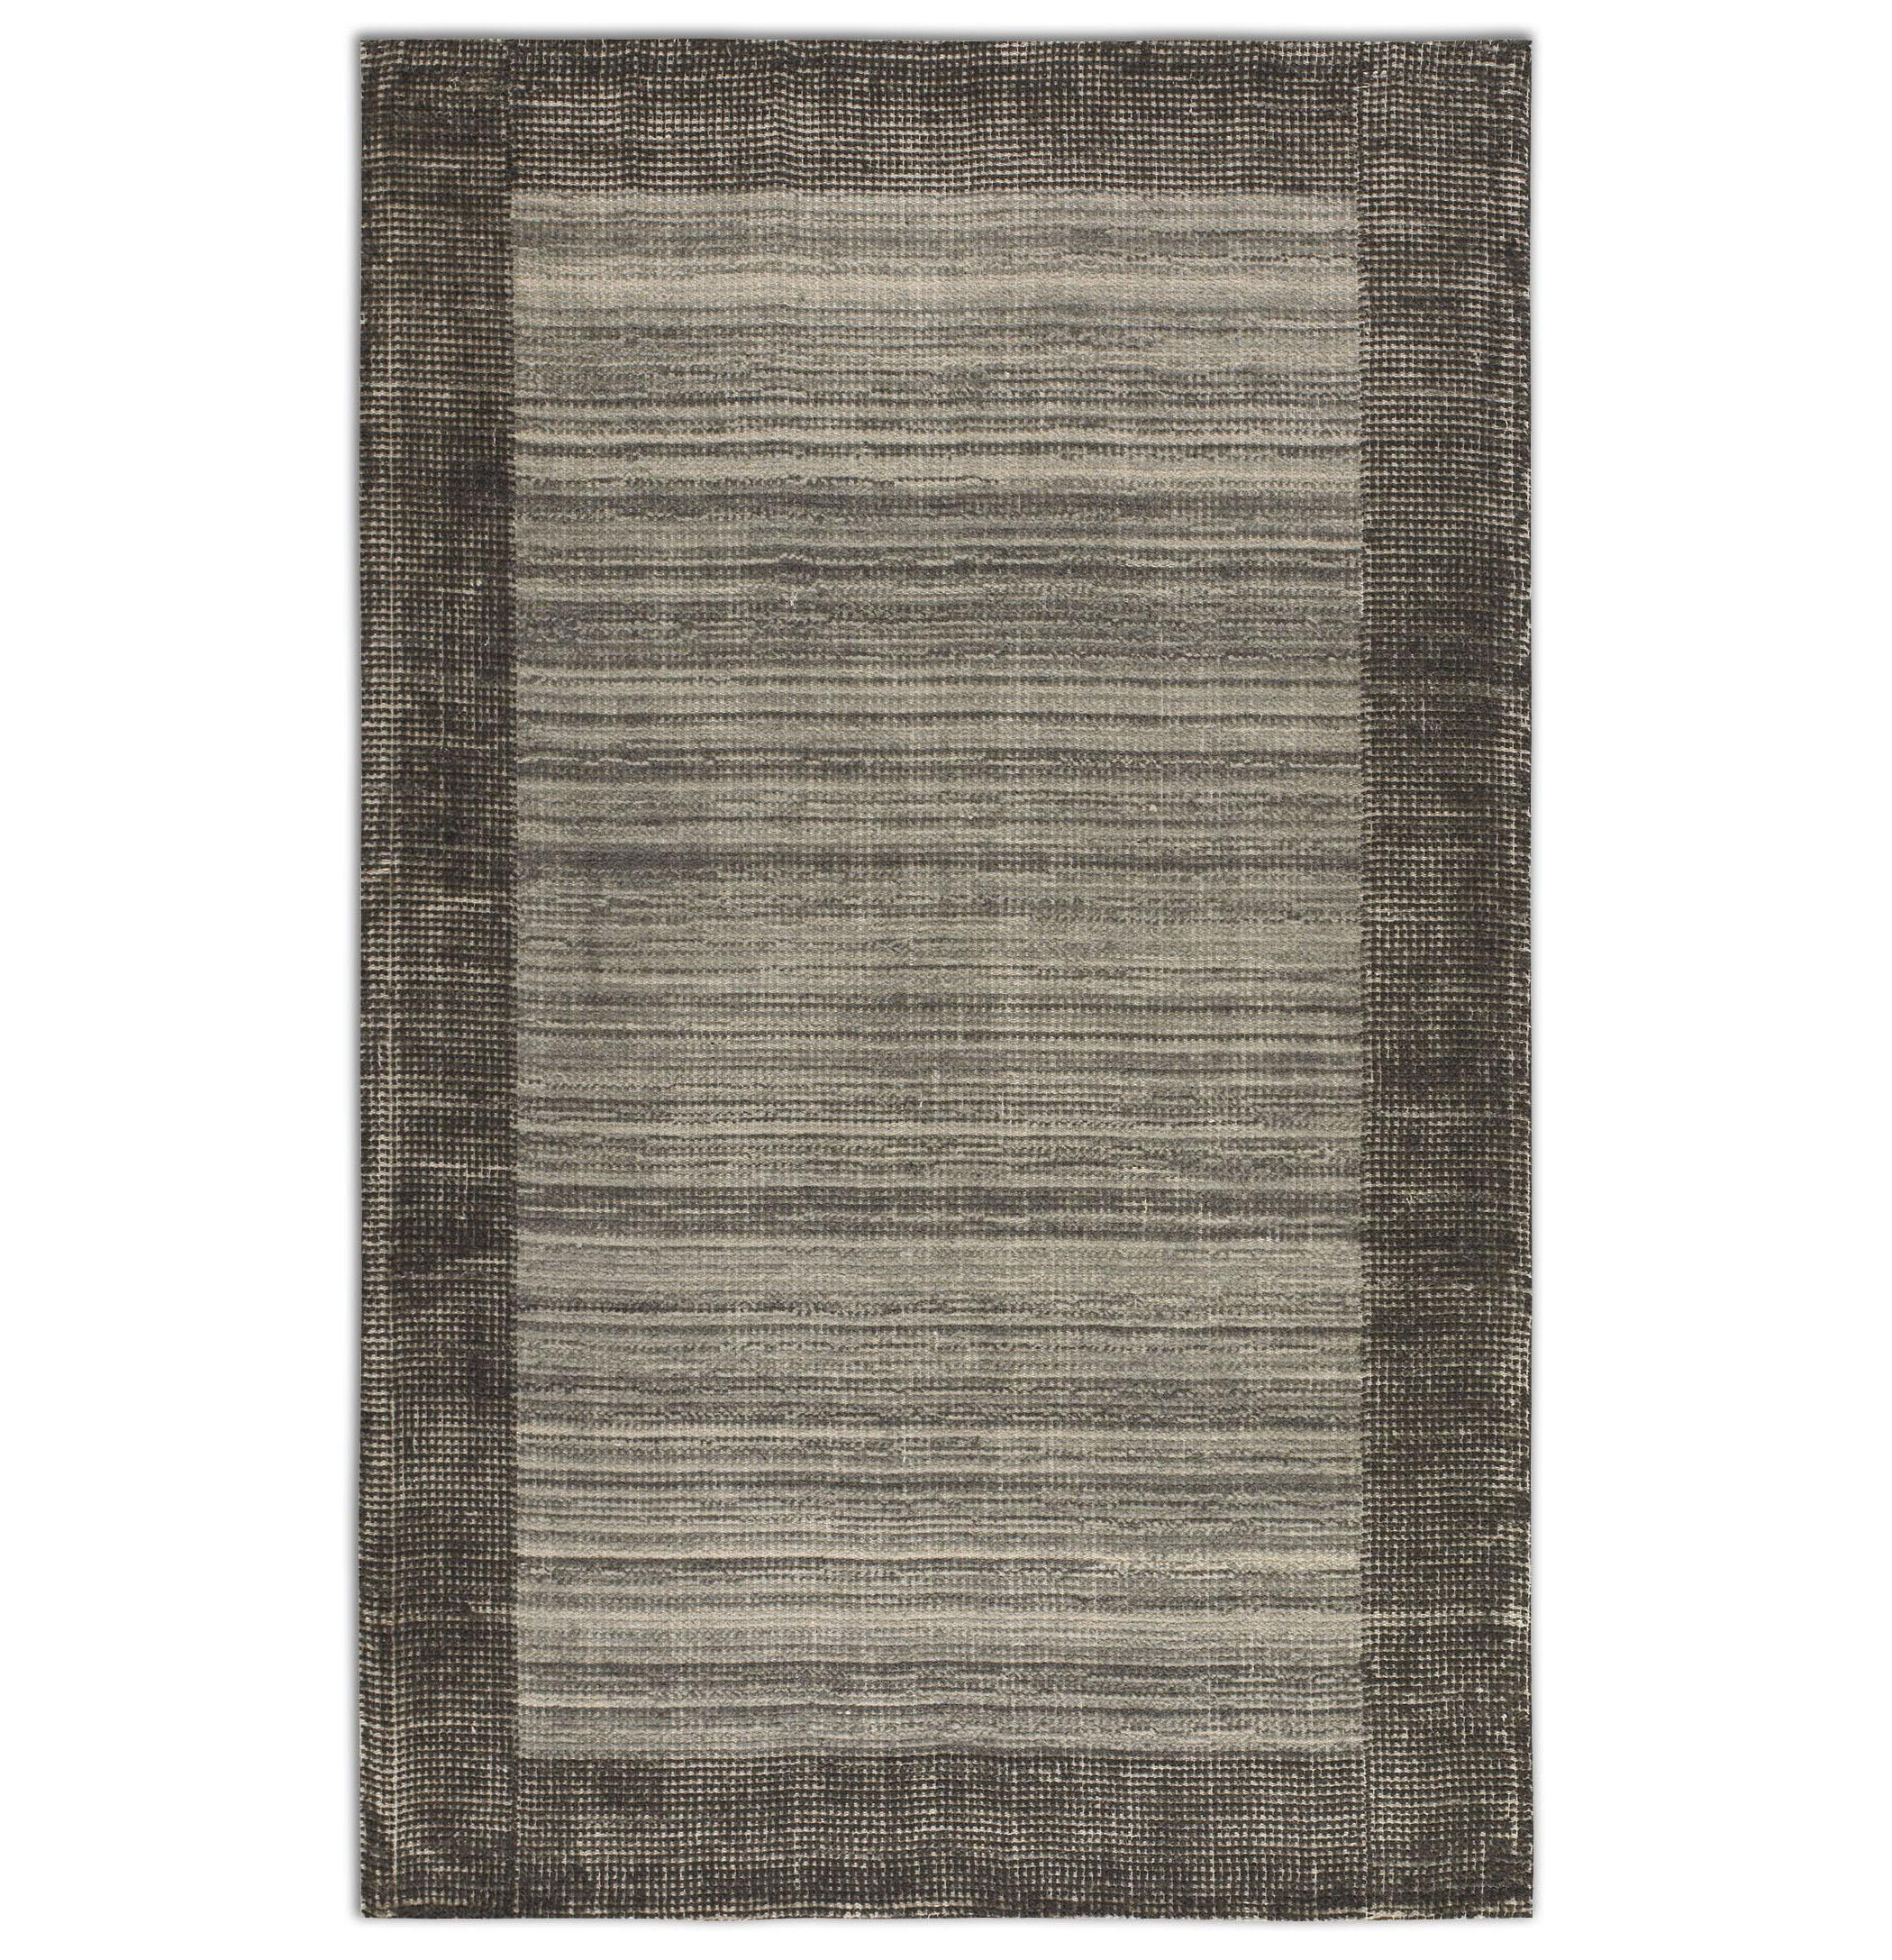 Uttermost Rugs Zell 8 X 10 Rug - Gray - Item Number: 73049-8